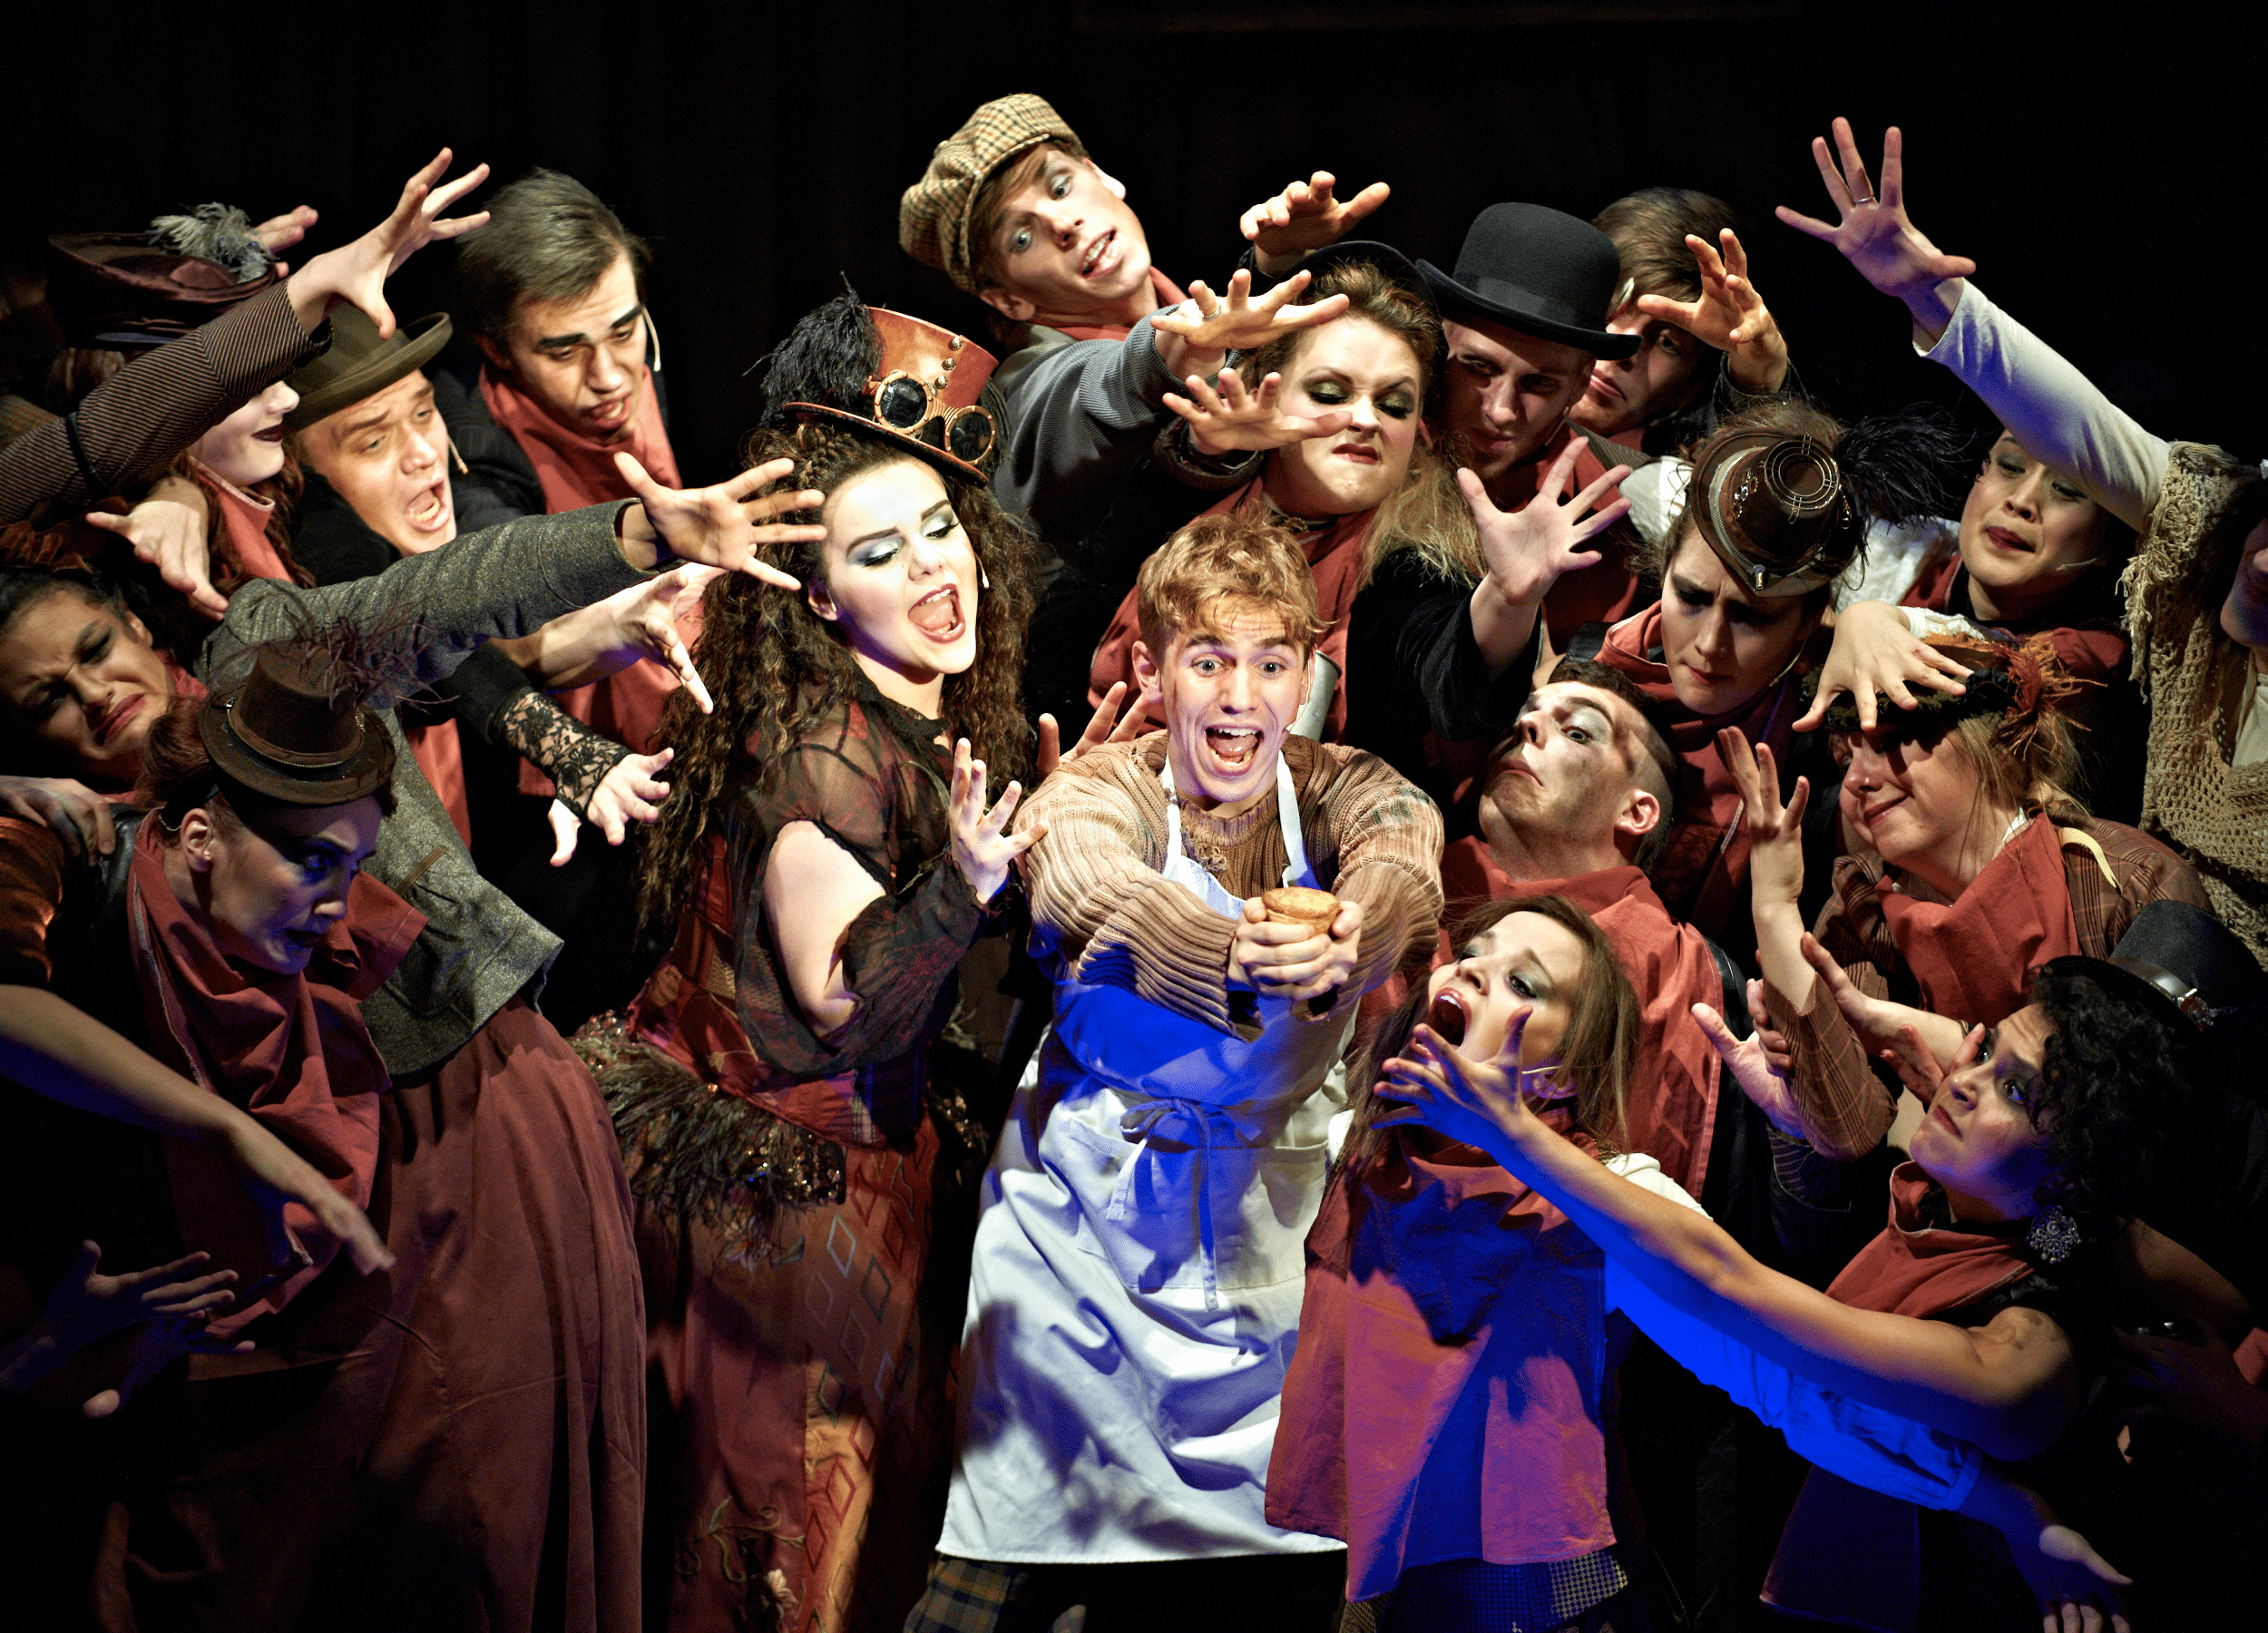 A group of Performing Arts students in a theatrical production